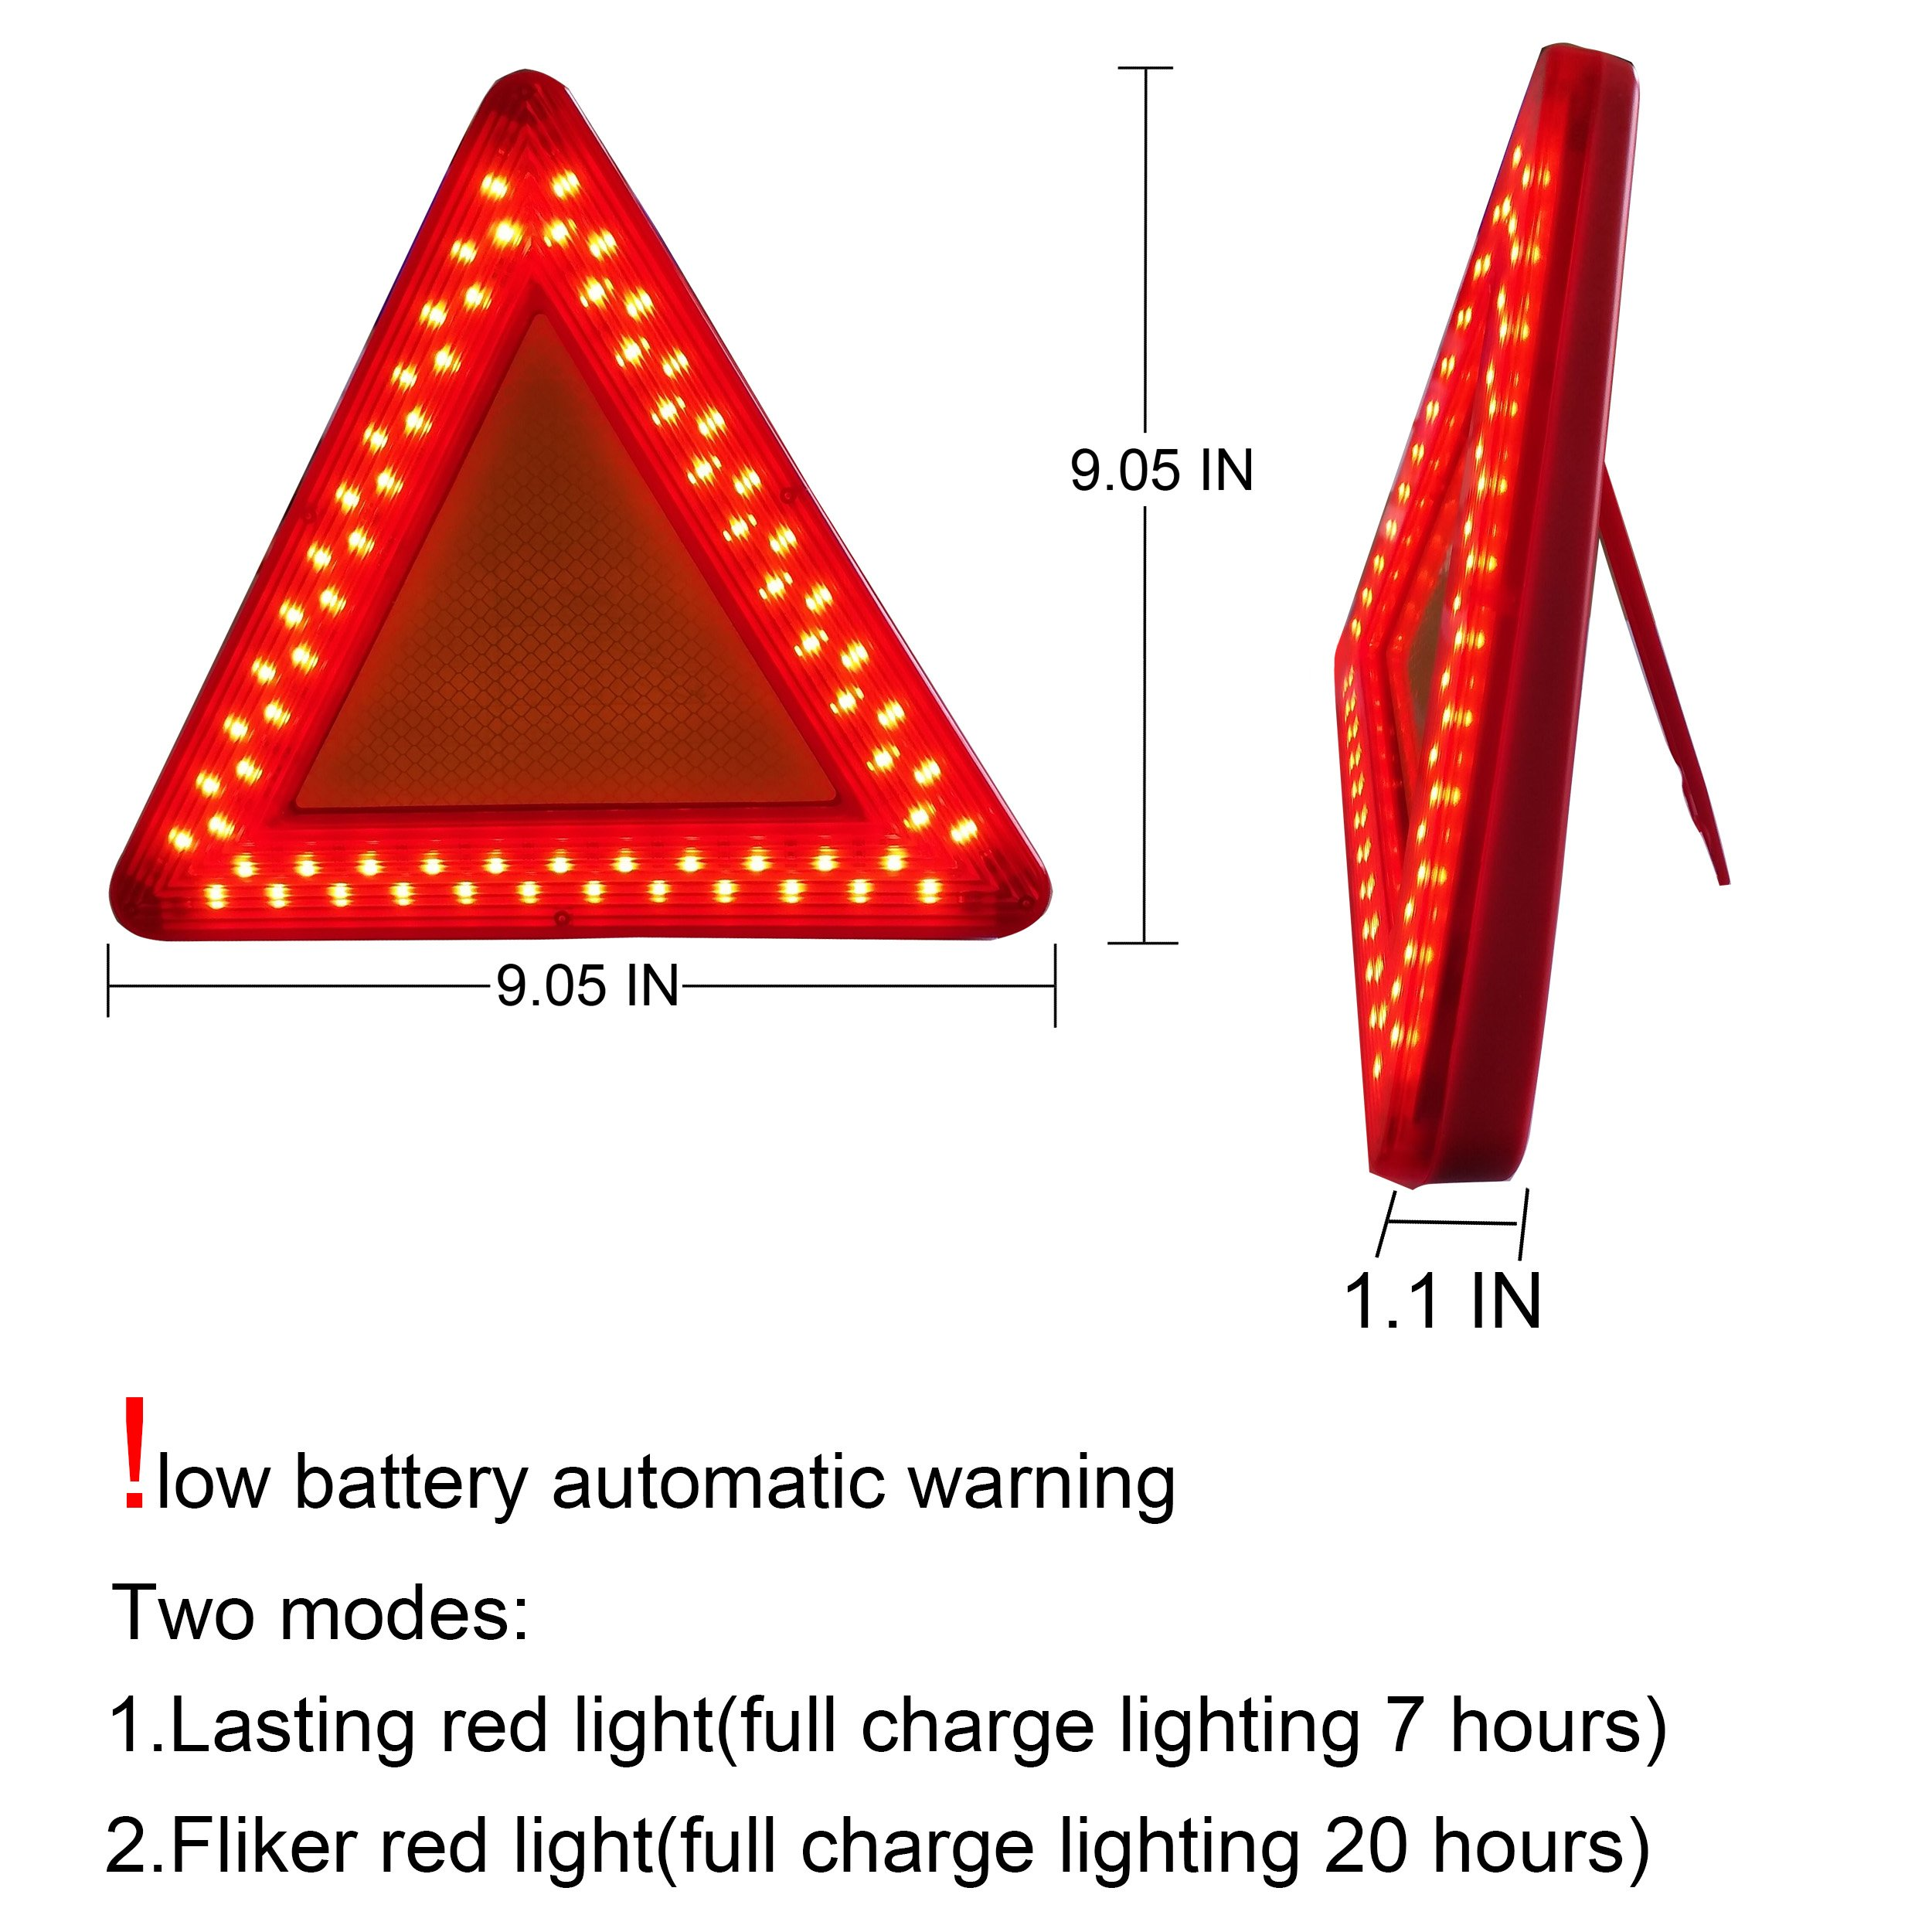 WELLHOME Roadside Red Emergency Safety Triangle Reflective Kit for Vehiclesr,2 Modes Lasting Lighting and Flicker Lighting,9.05 Inch - 1 Pack